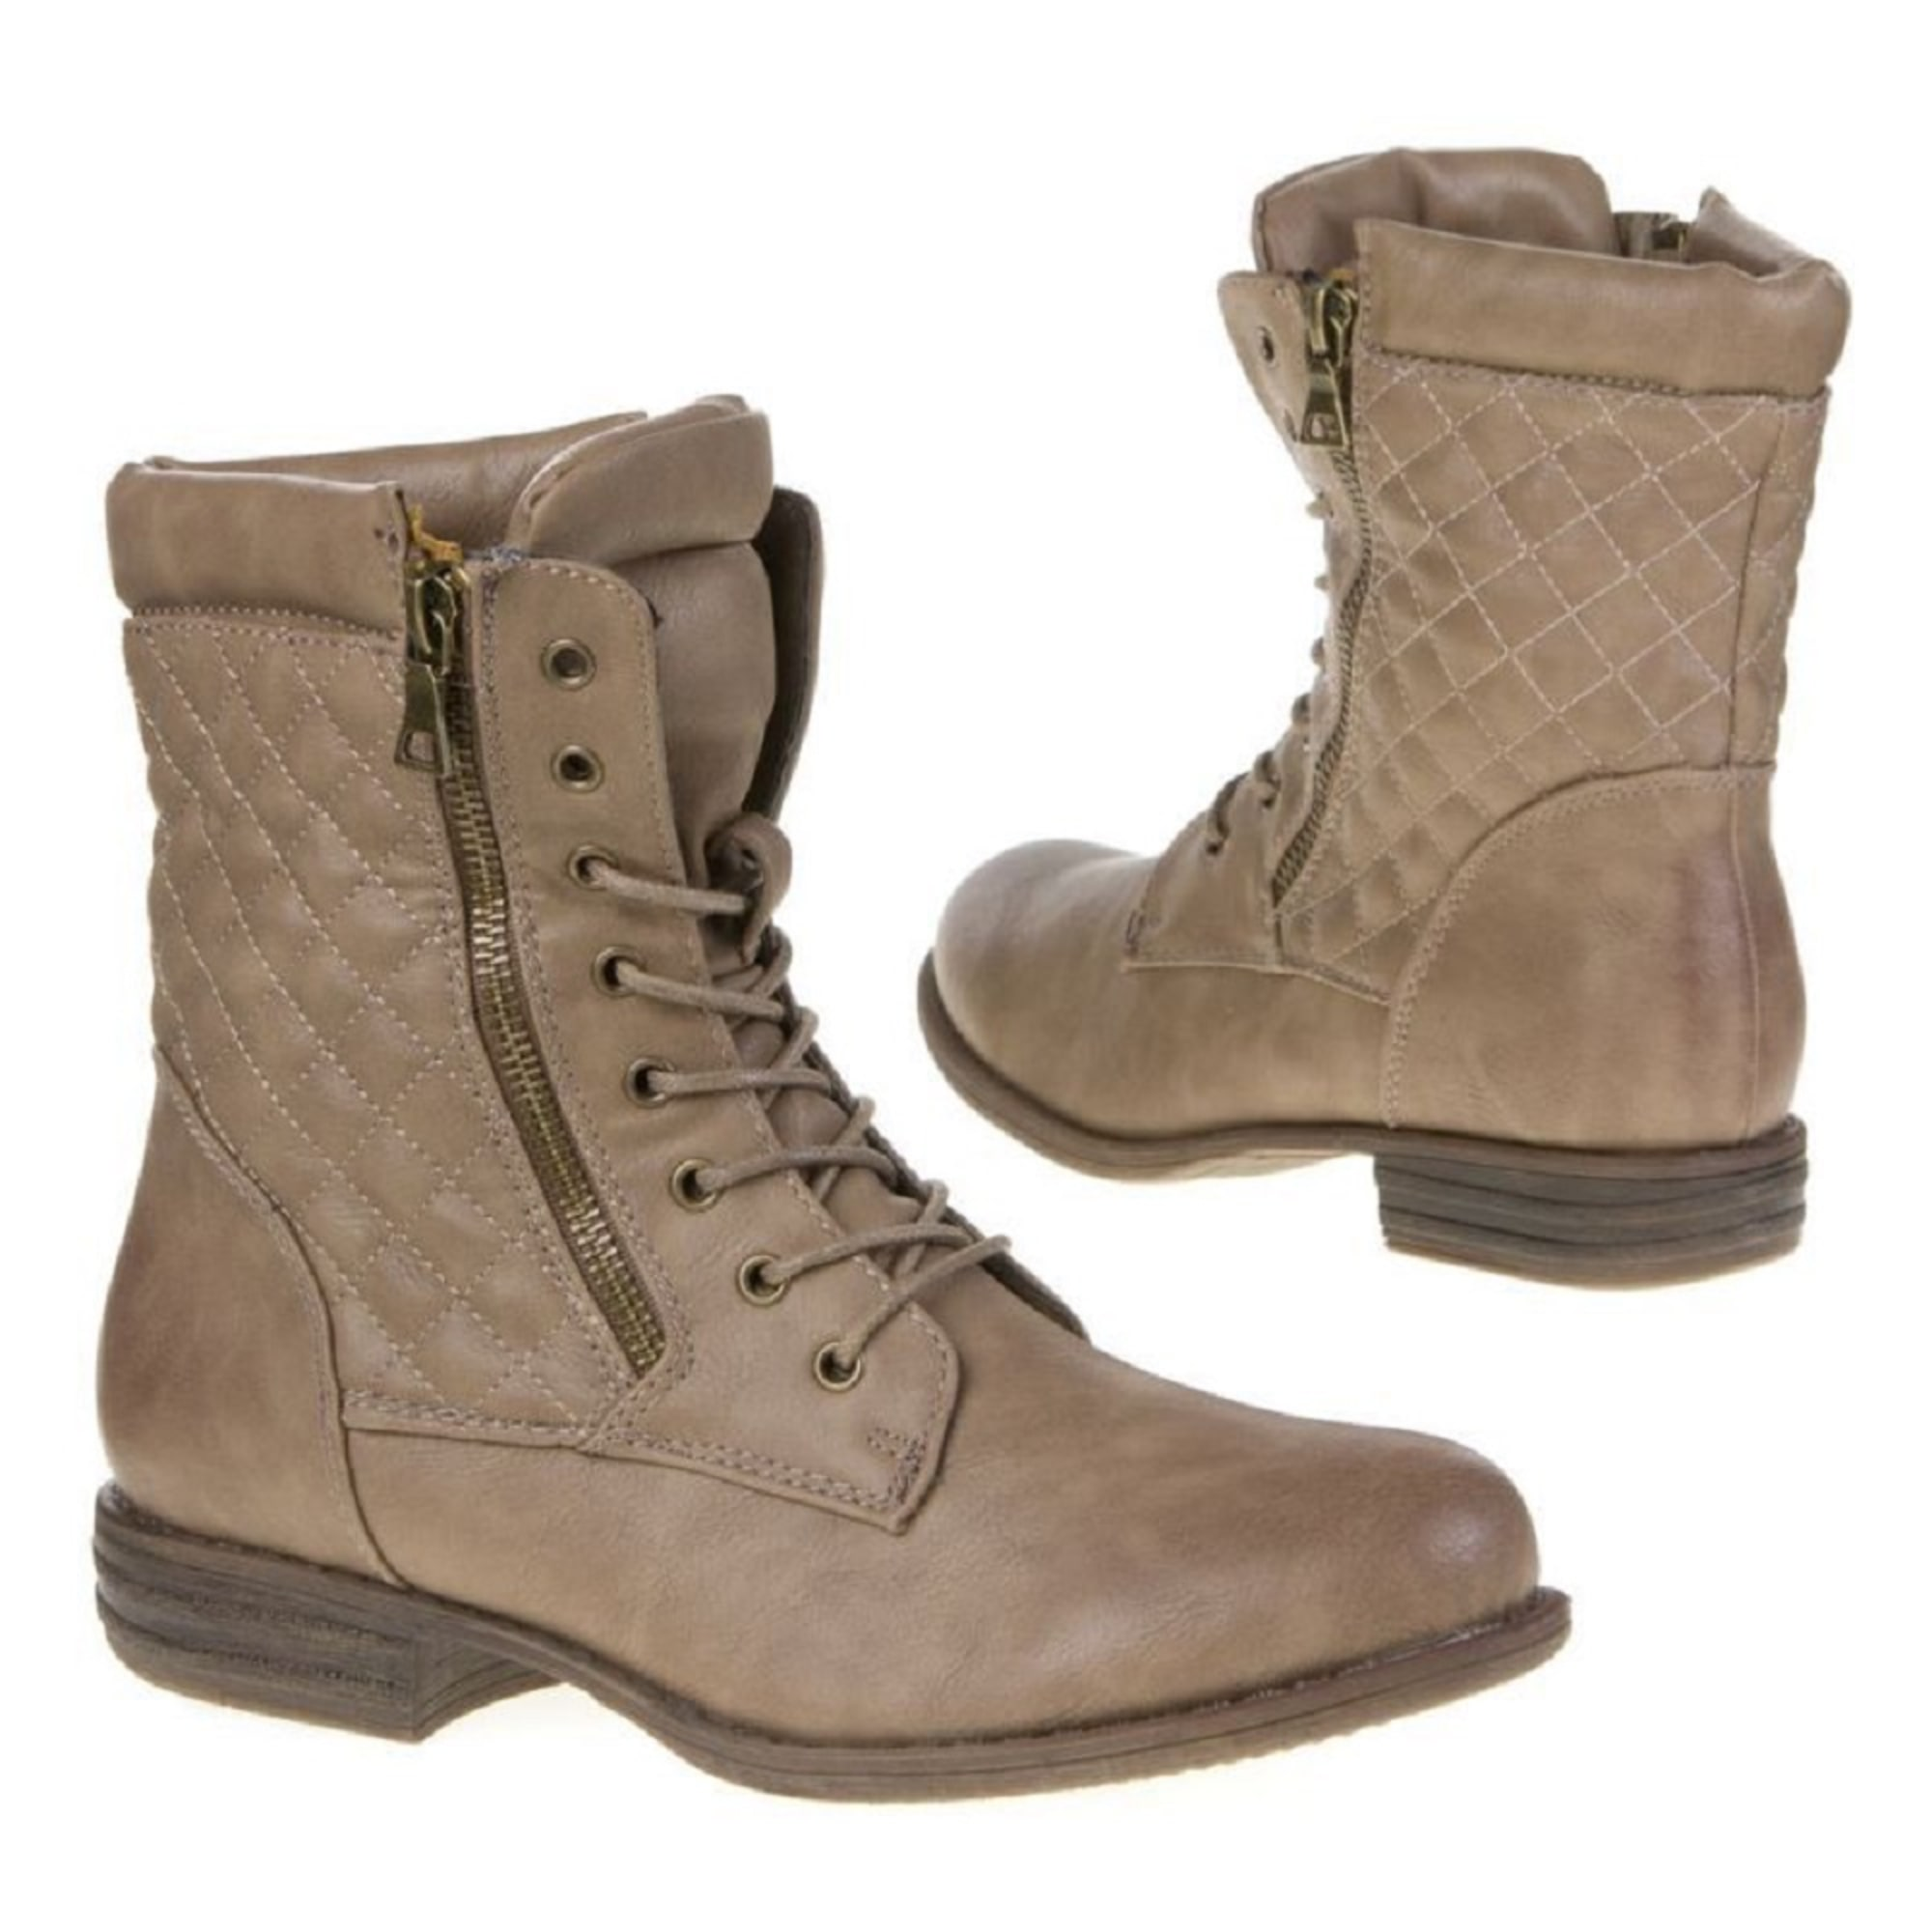 Bottines \u0026 low boots plates